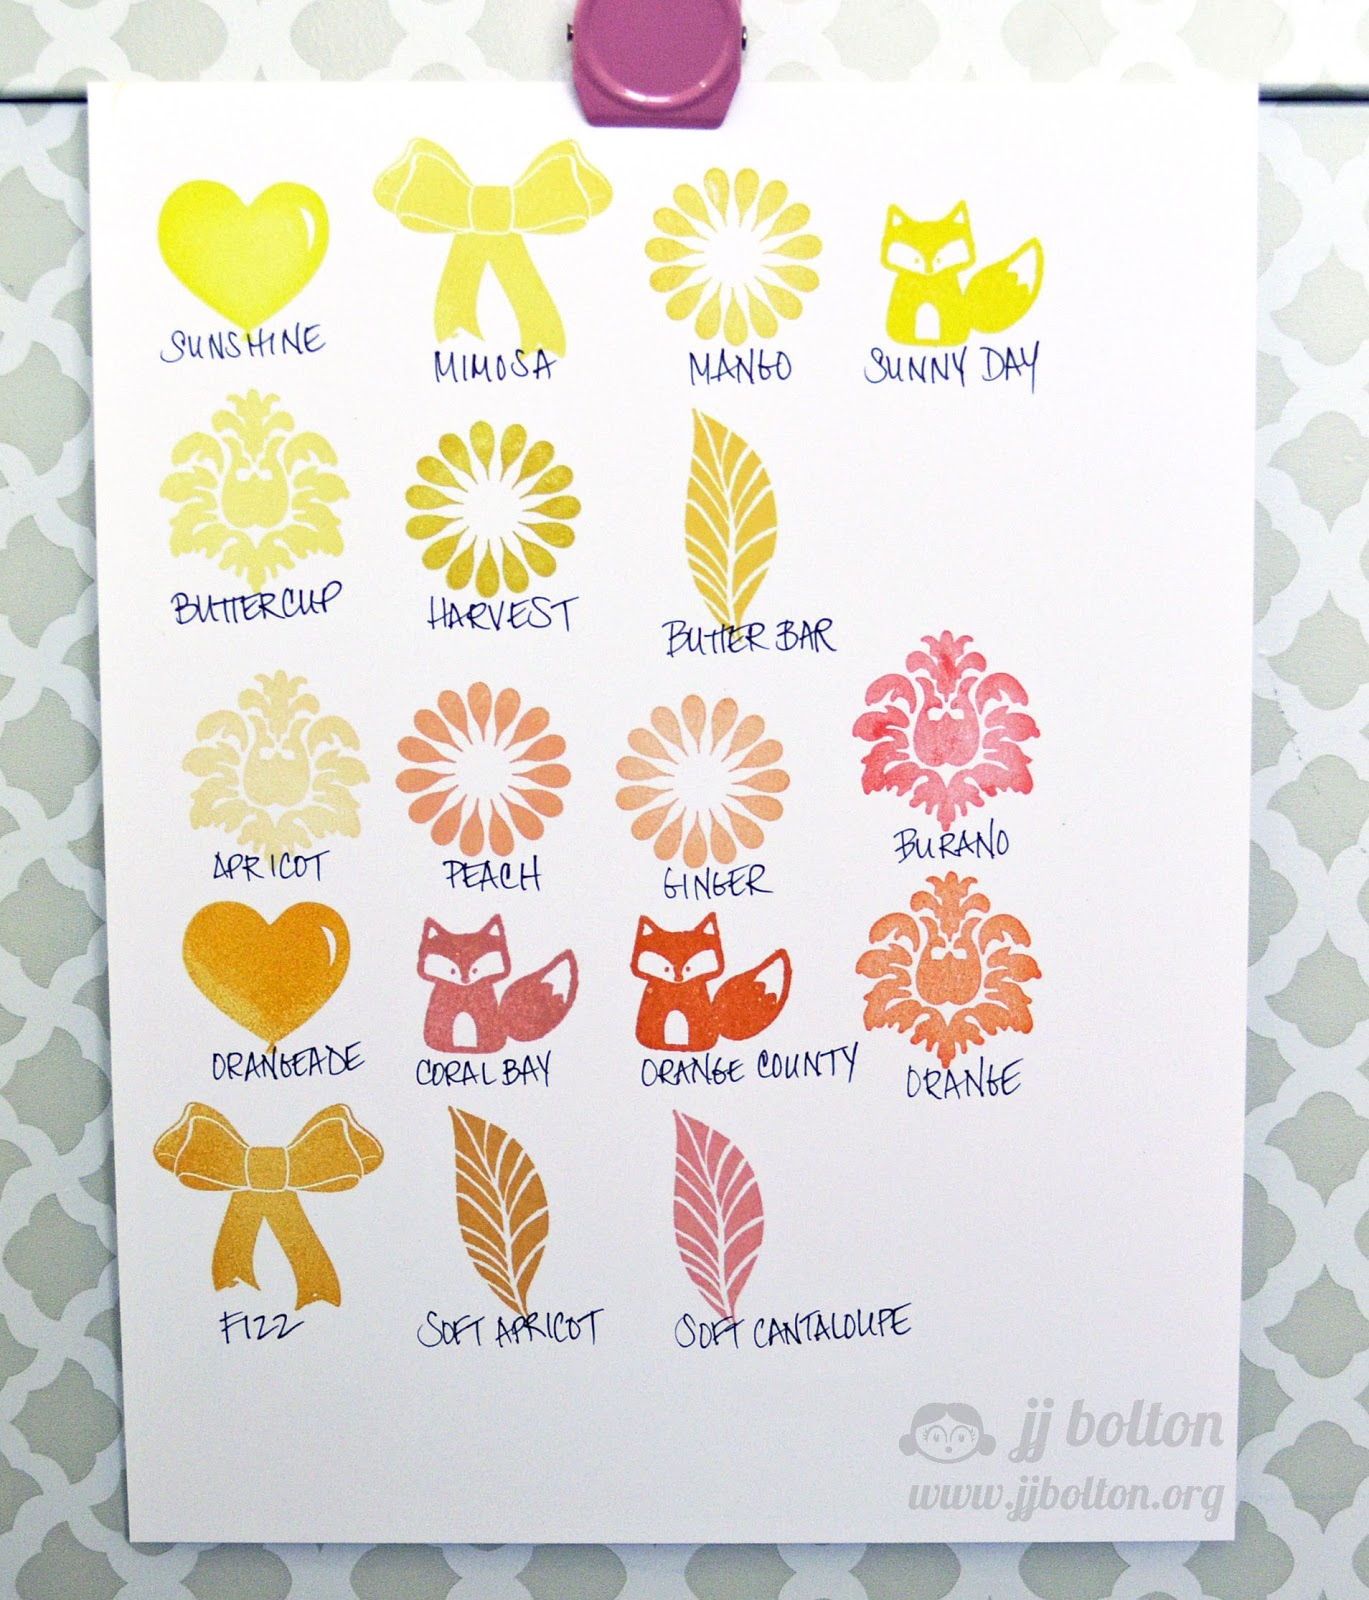 Jj bolton handmade cards all about the ink and rounding out with pinks and reds nvjuhfo Image collections